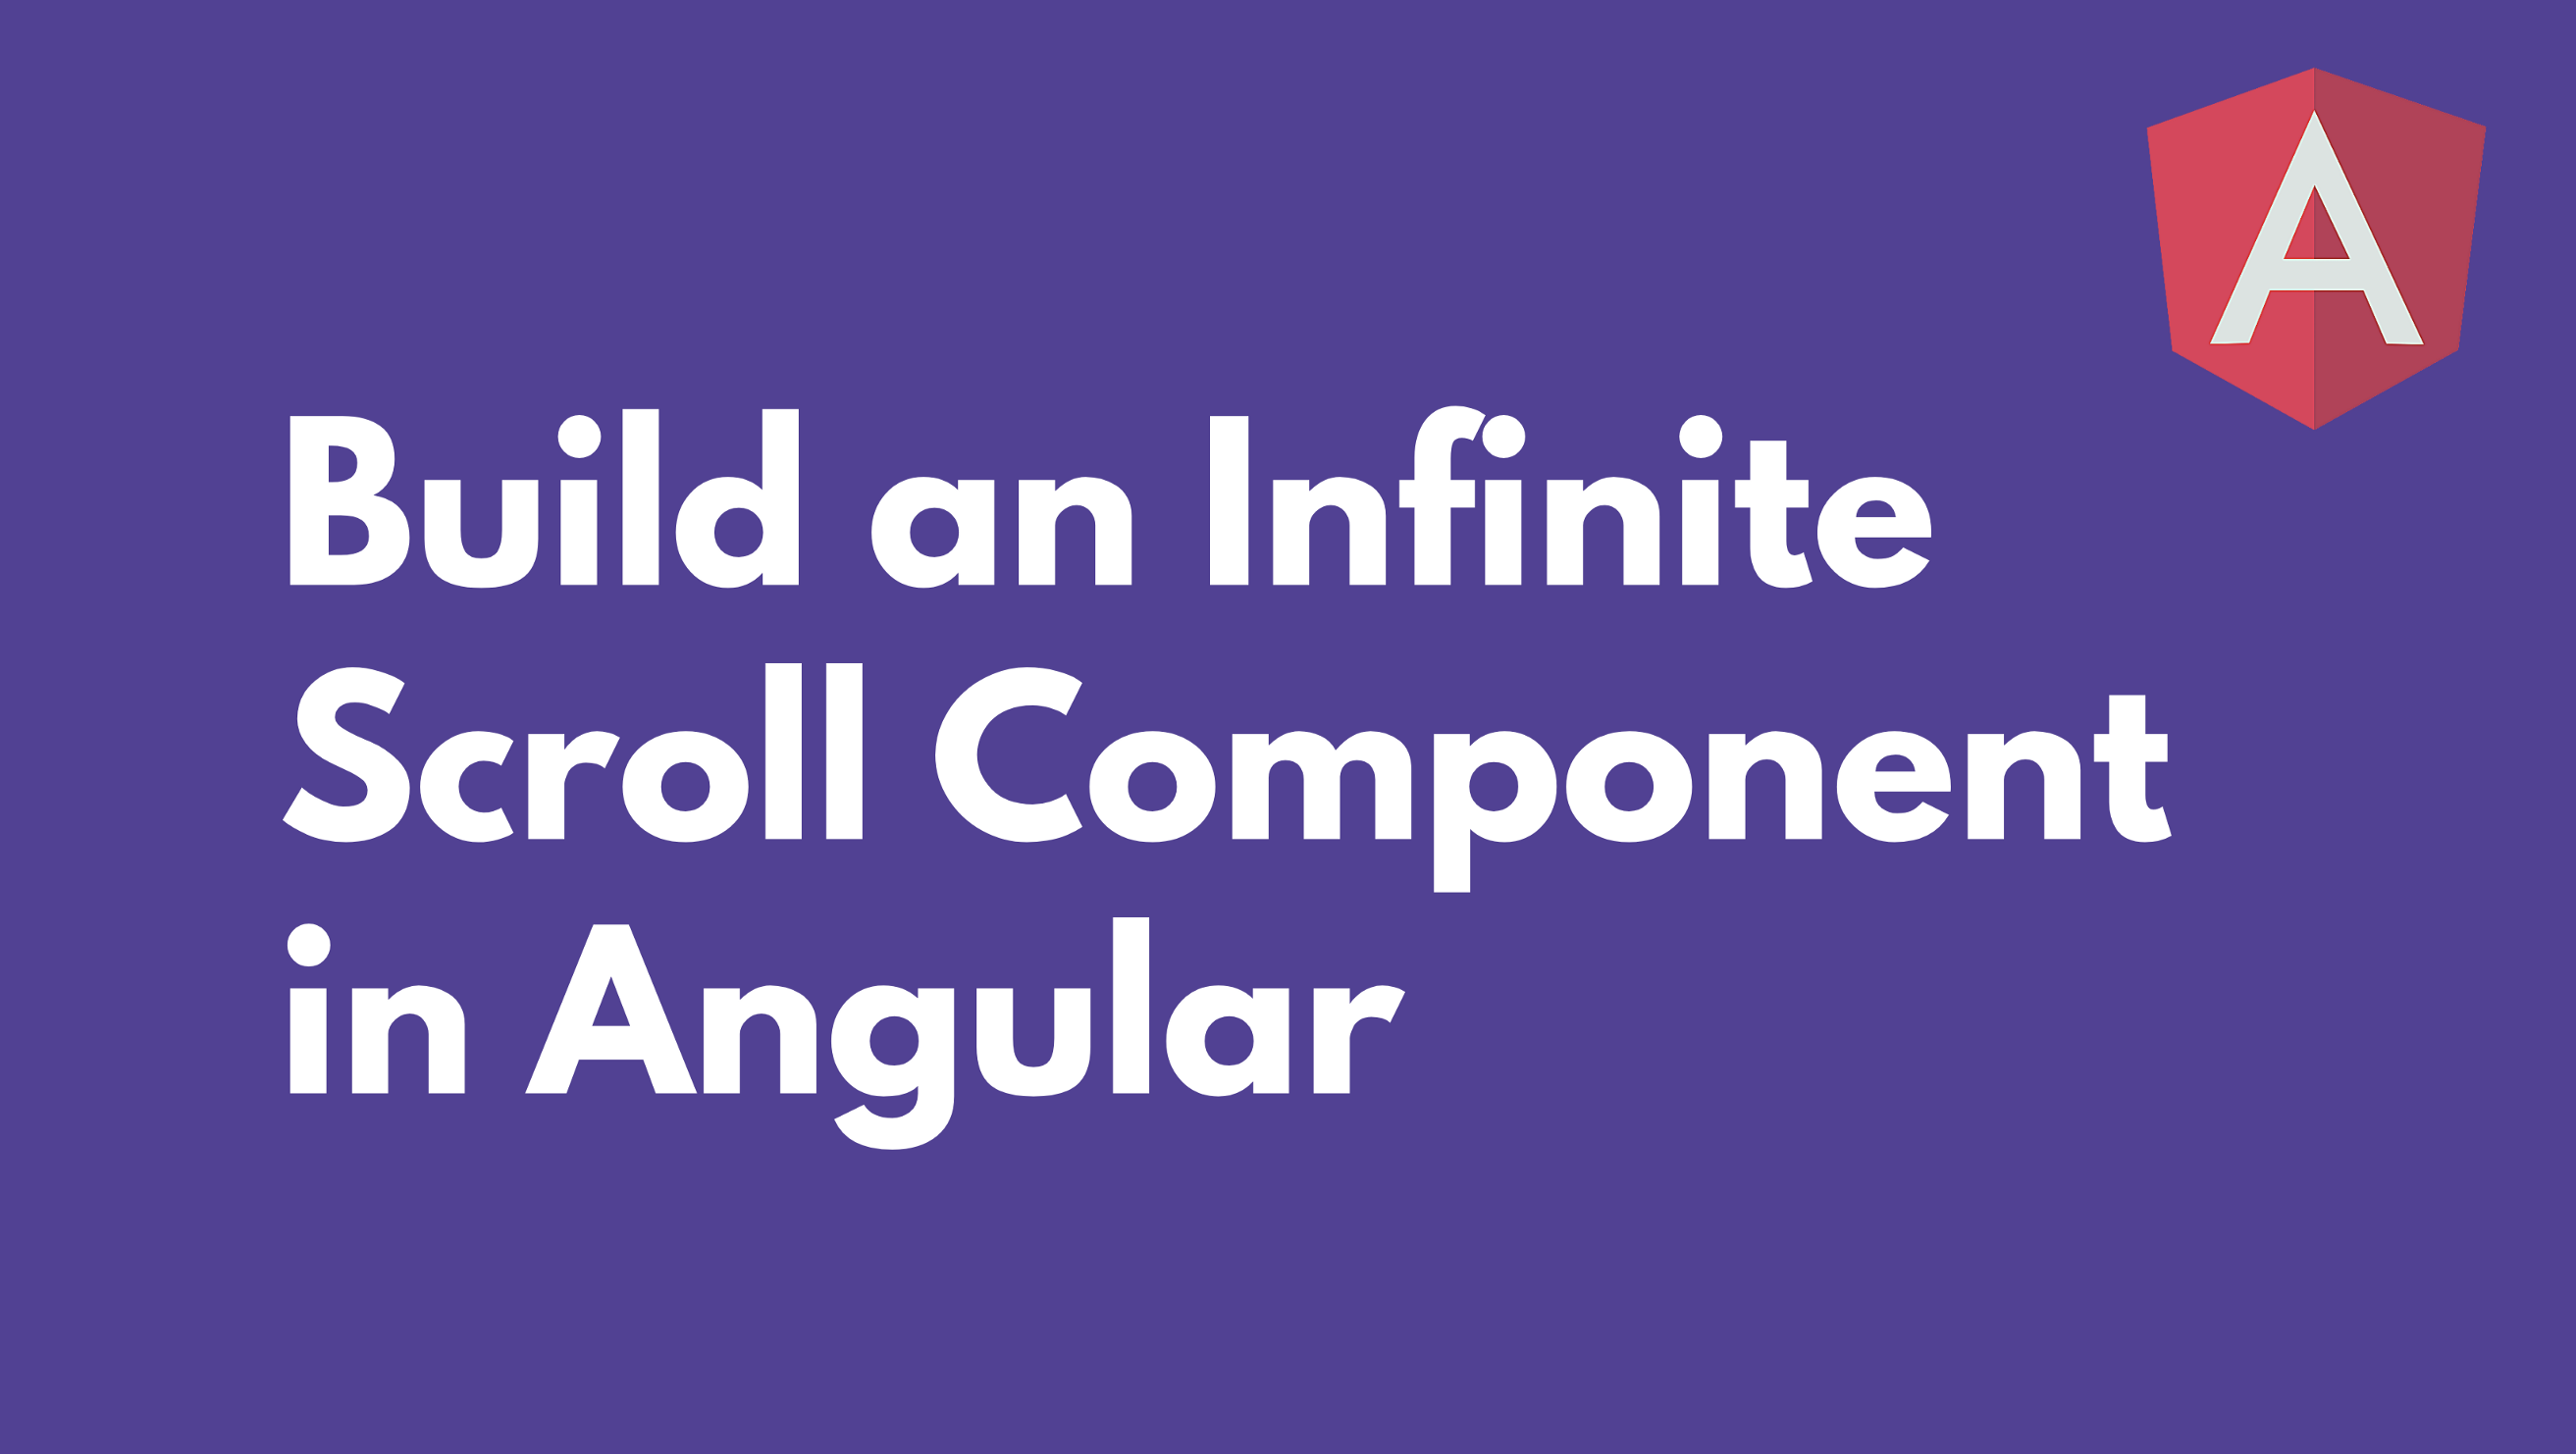 Build an Infinite Scroll Component in Angular - Netanel Basal